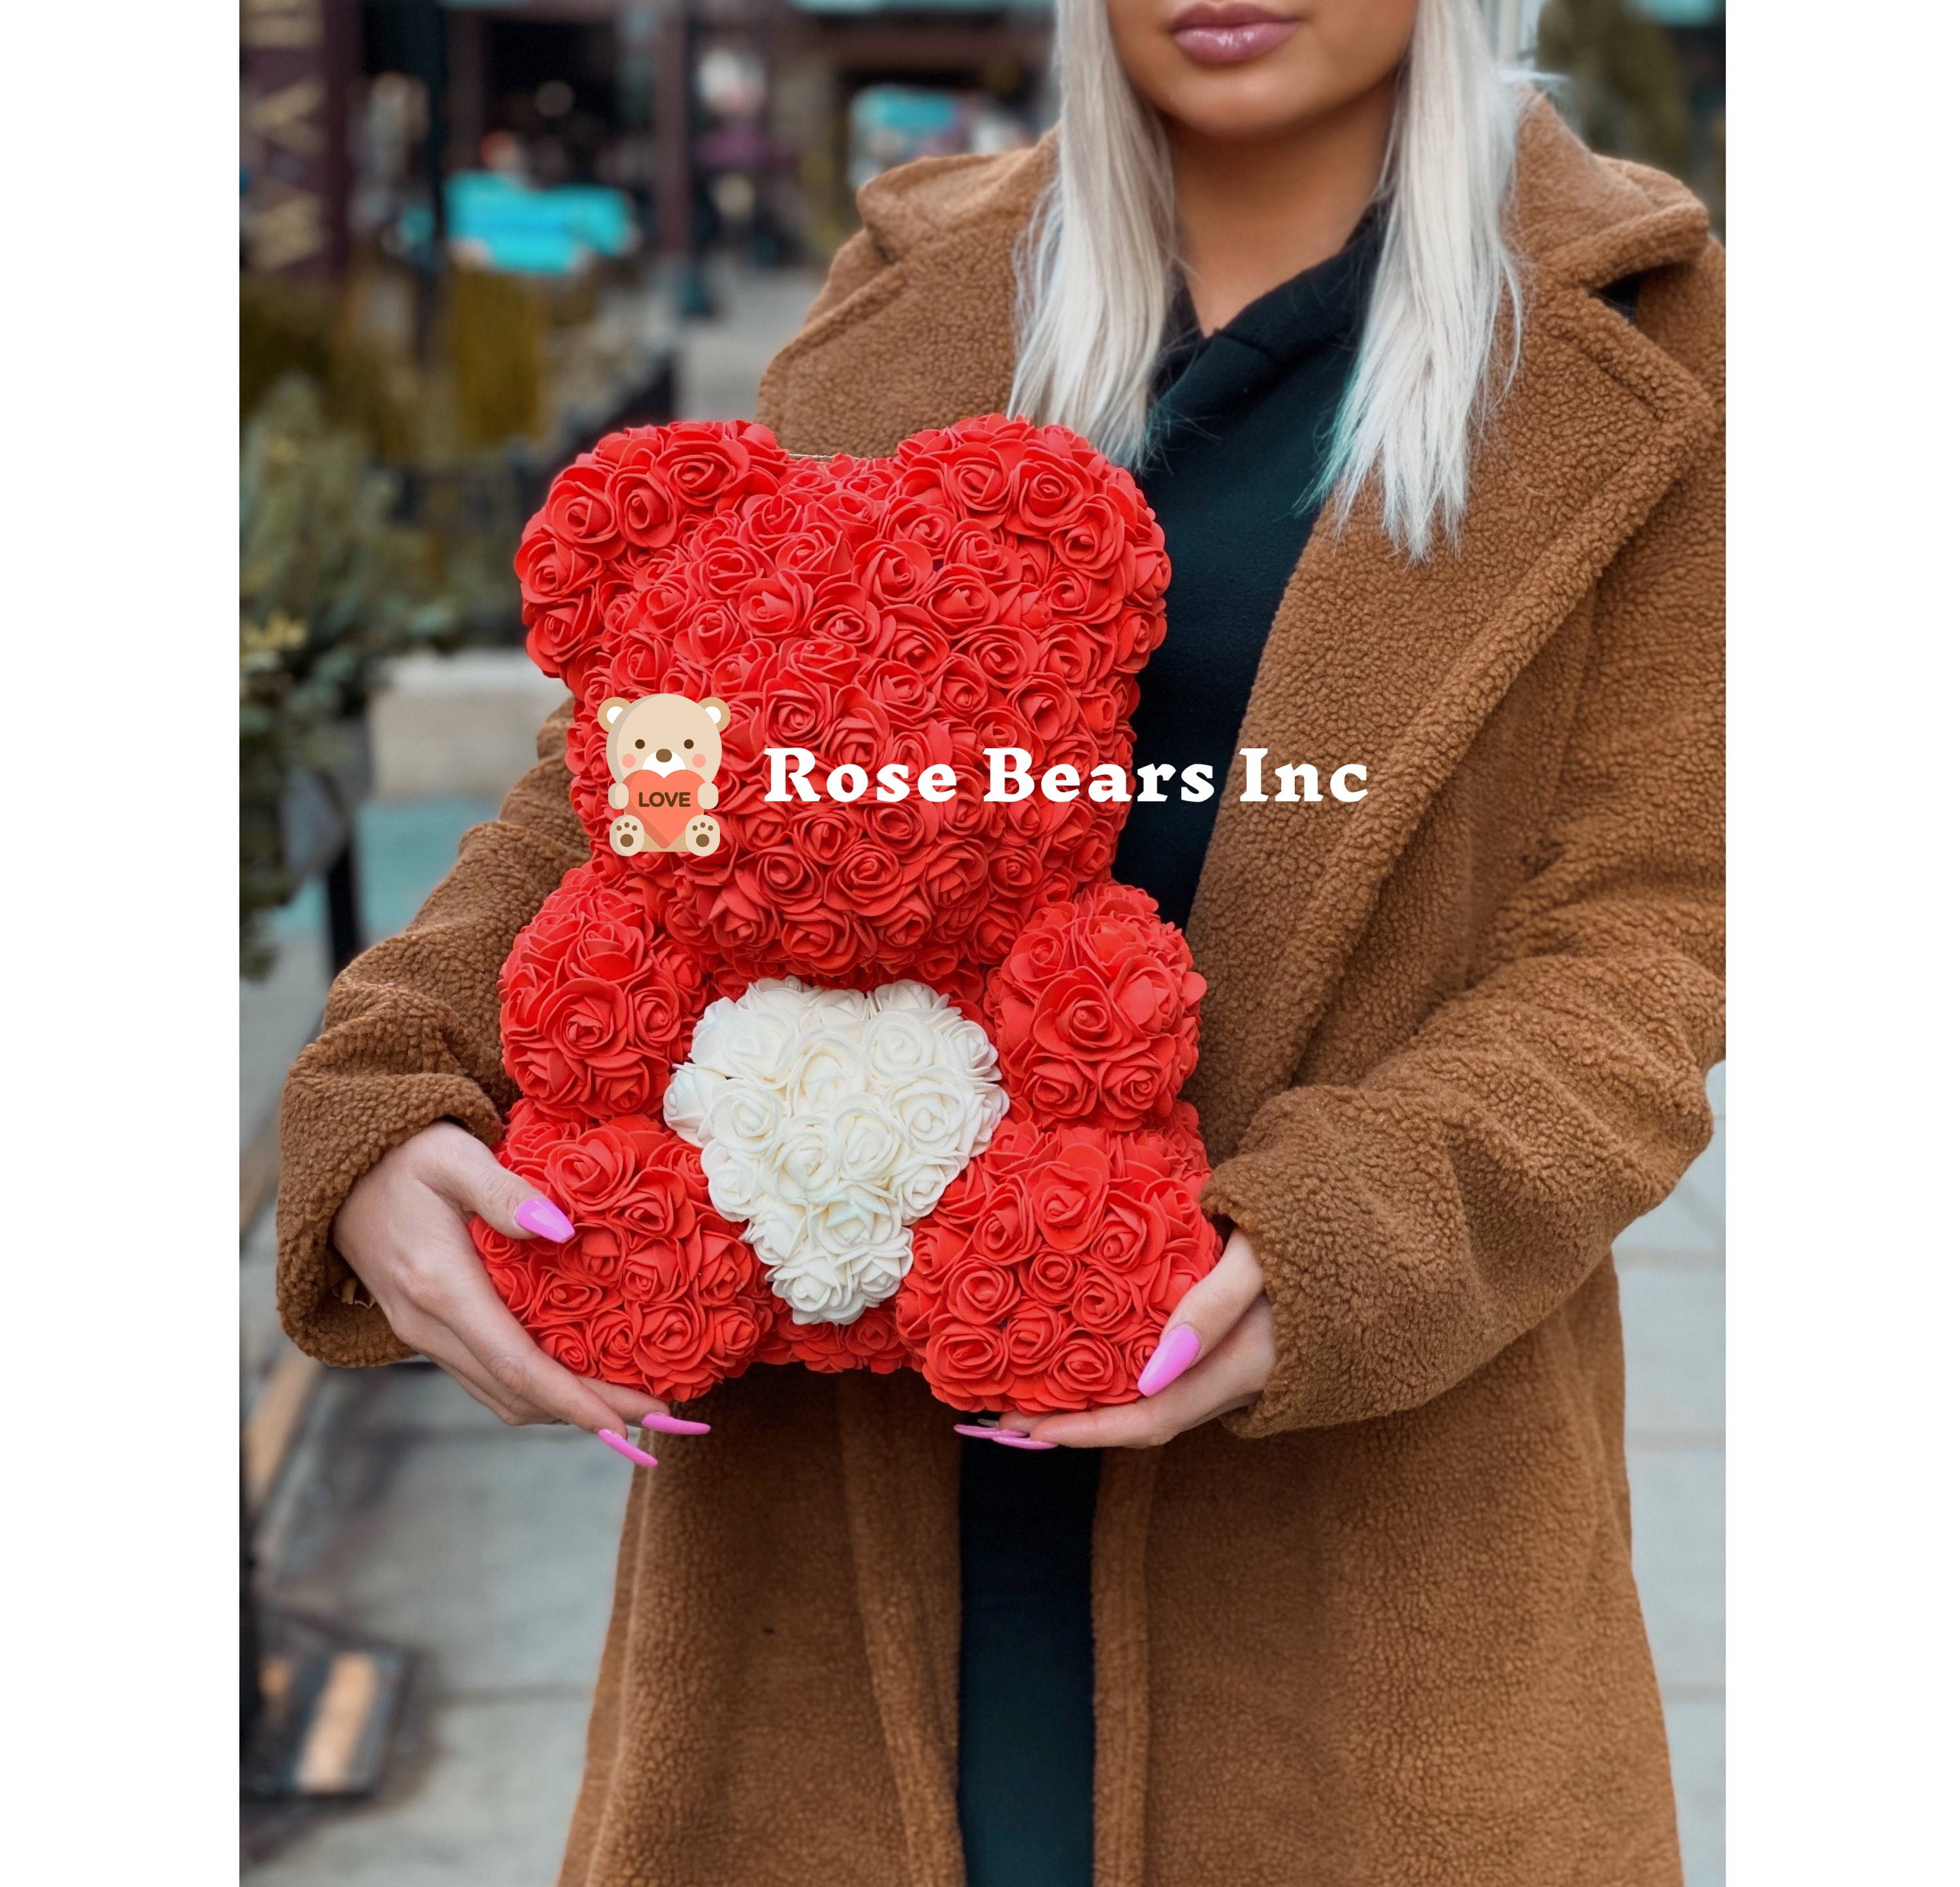 rose bears inc, red rose bear, rose bear with heart